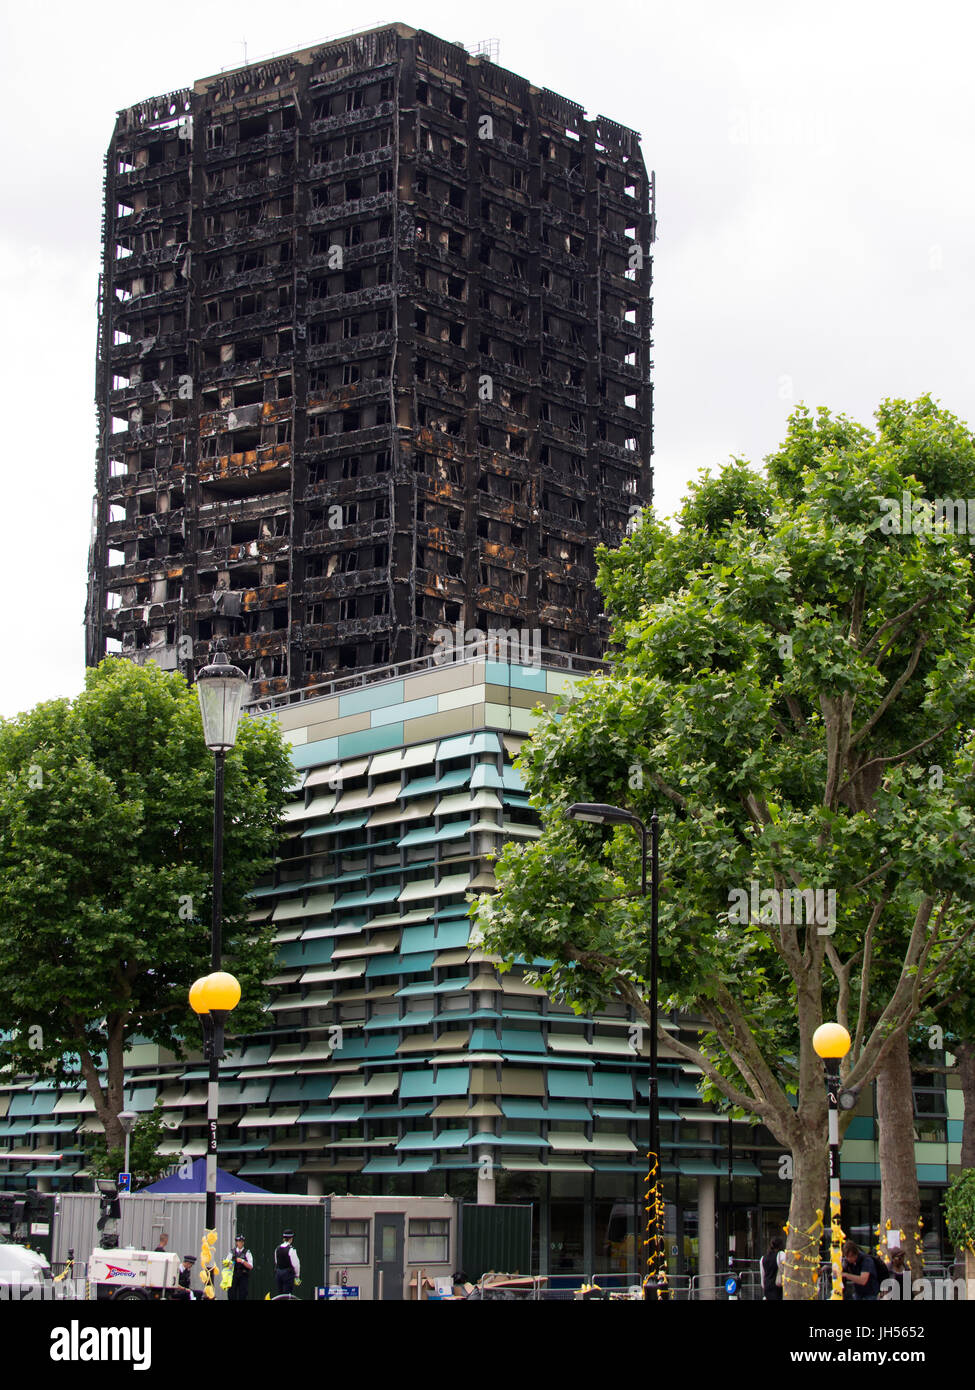 London, UK - Jul 4, 2017: The Grenfell Tower block in Kensington, West London in which at least 80 people are thought - Stock Image